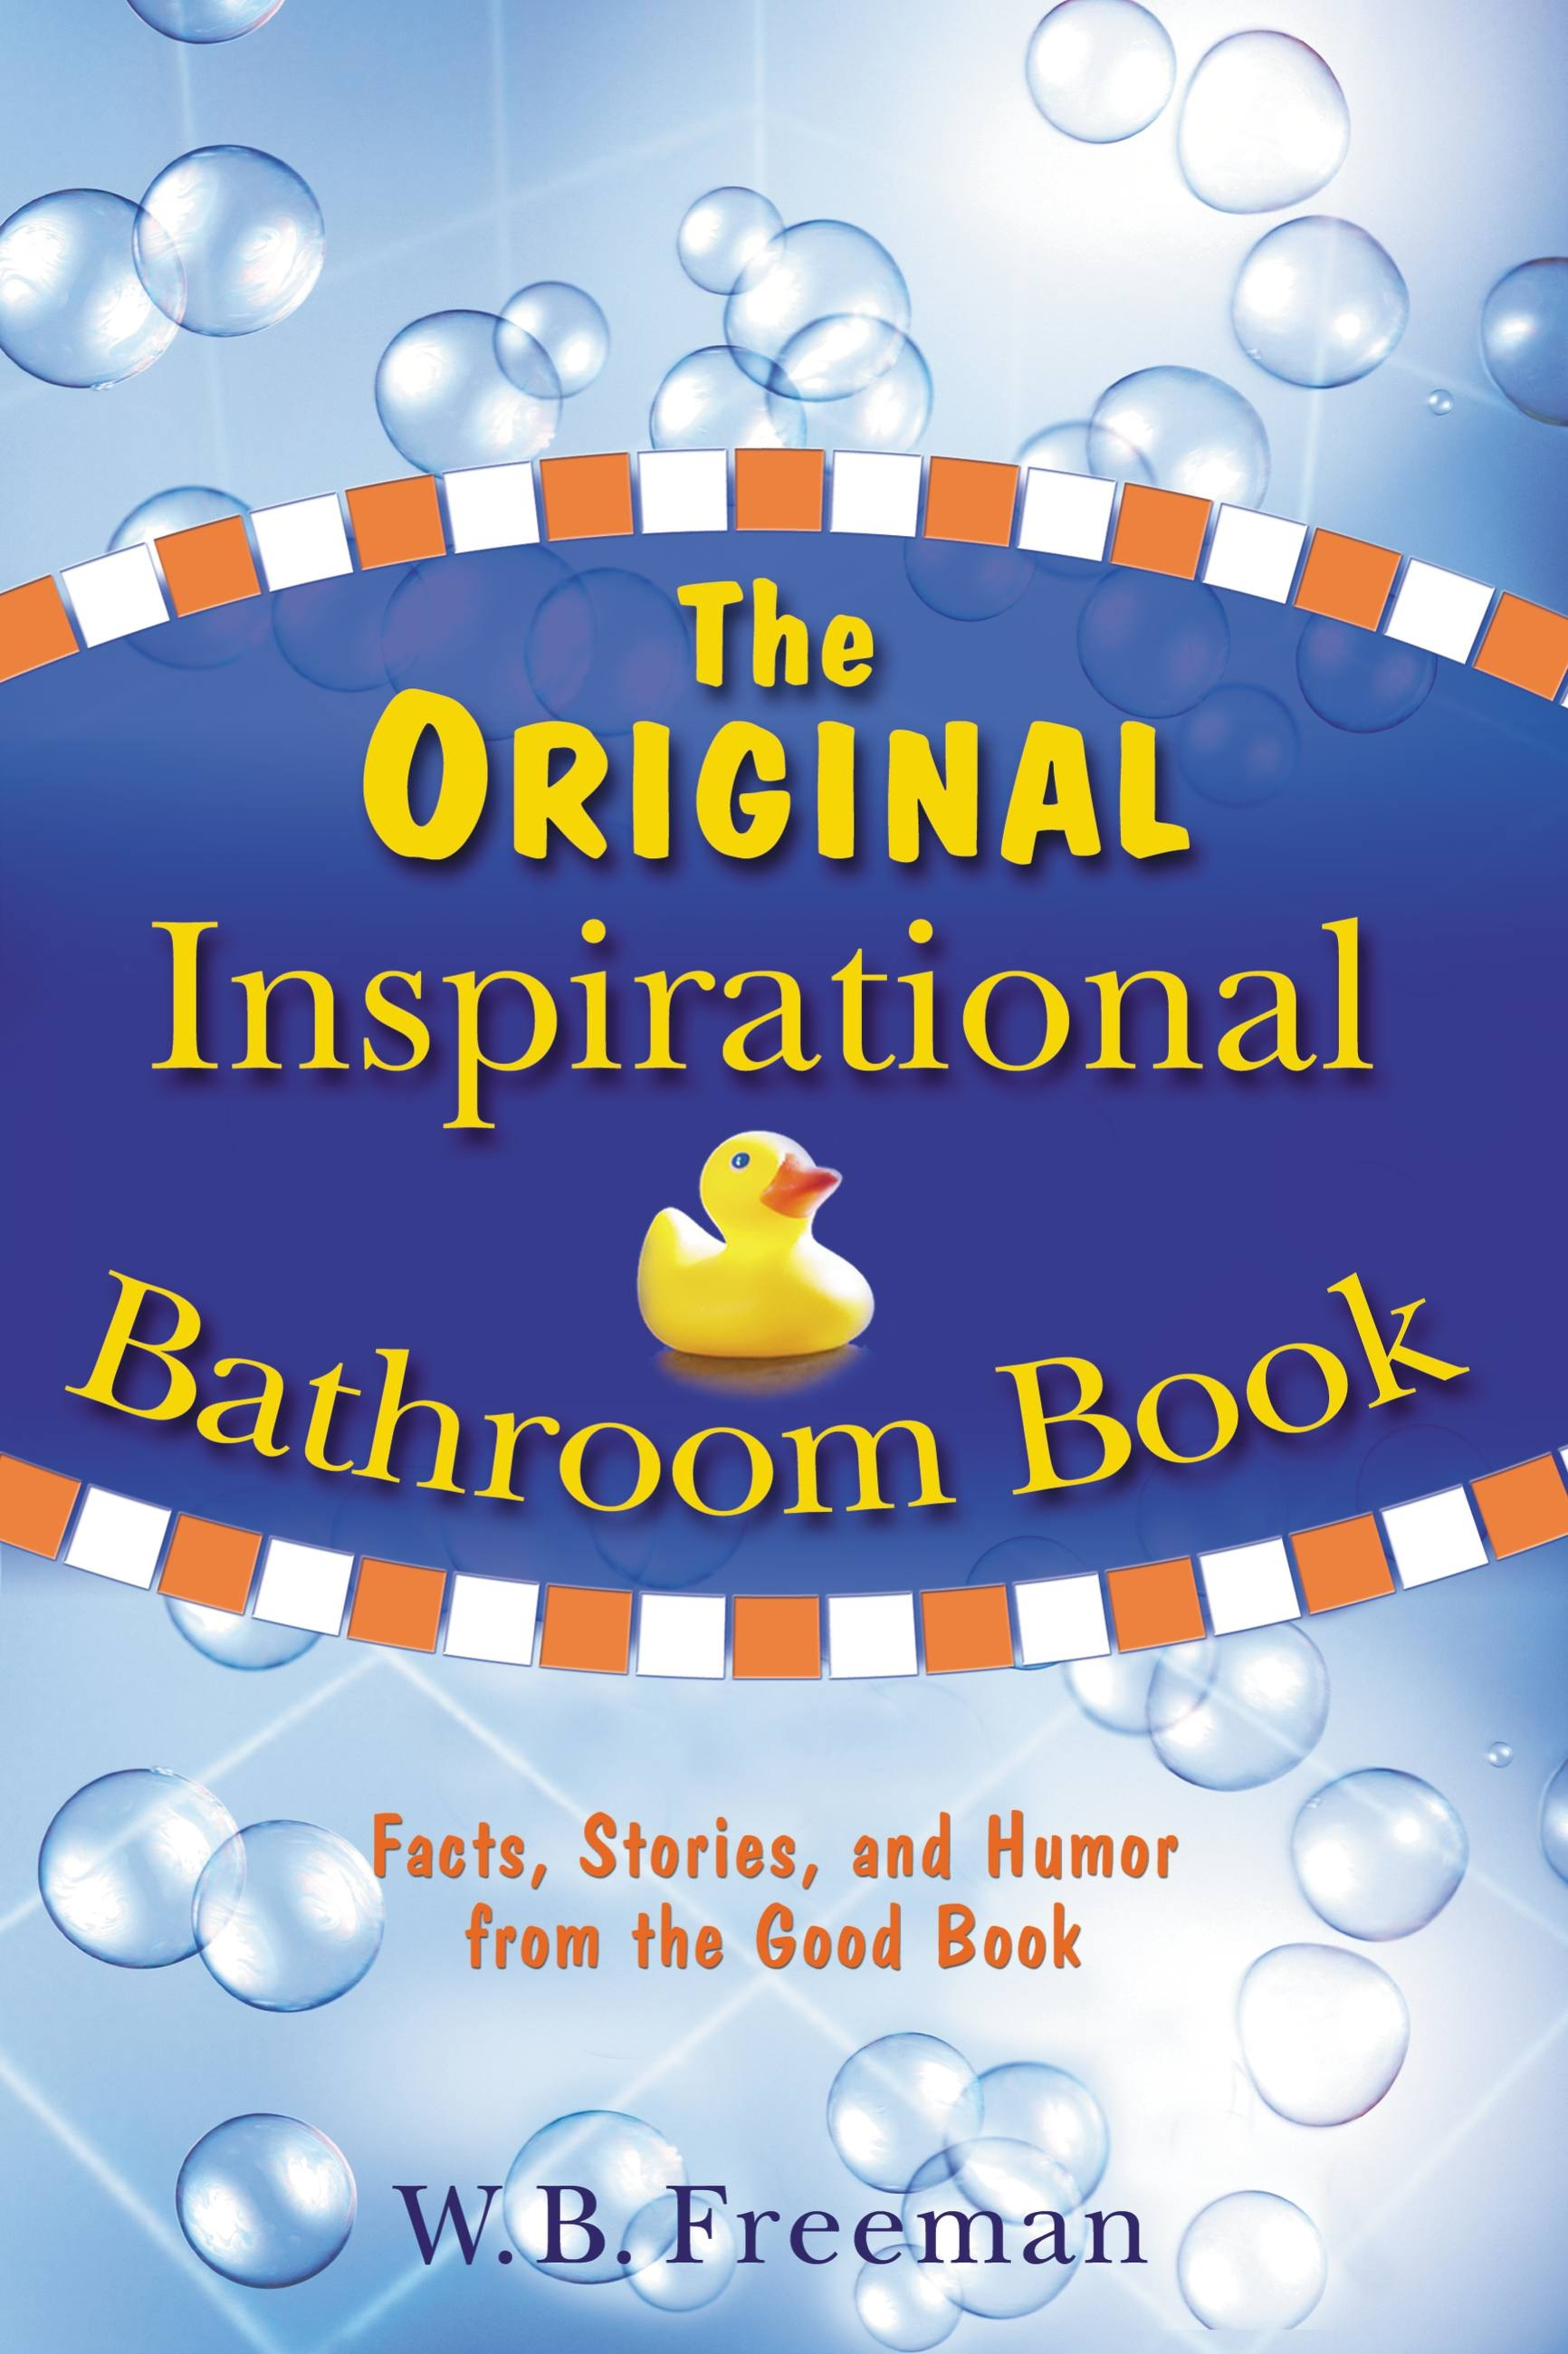 The Original Inspirational Bathroom Book